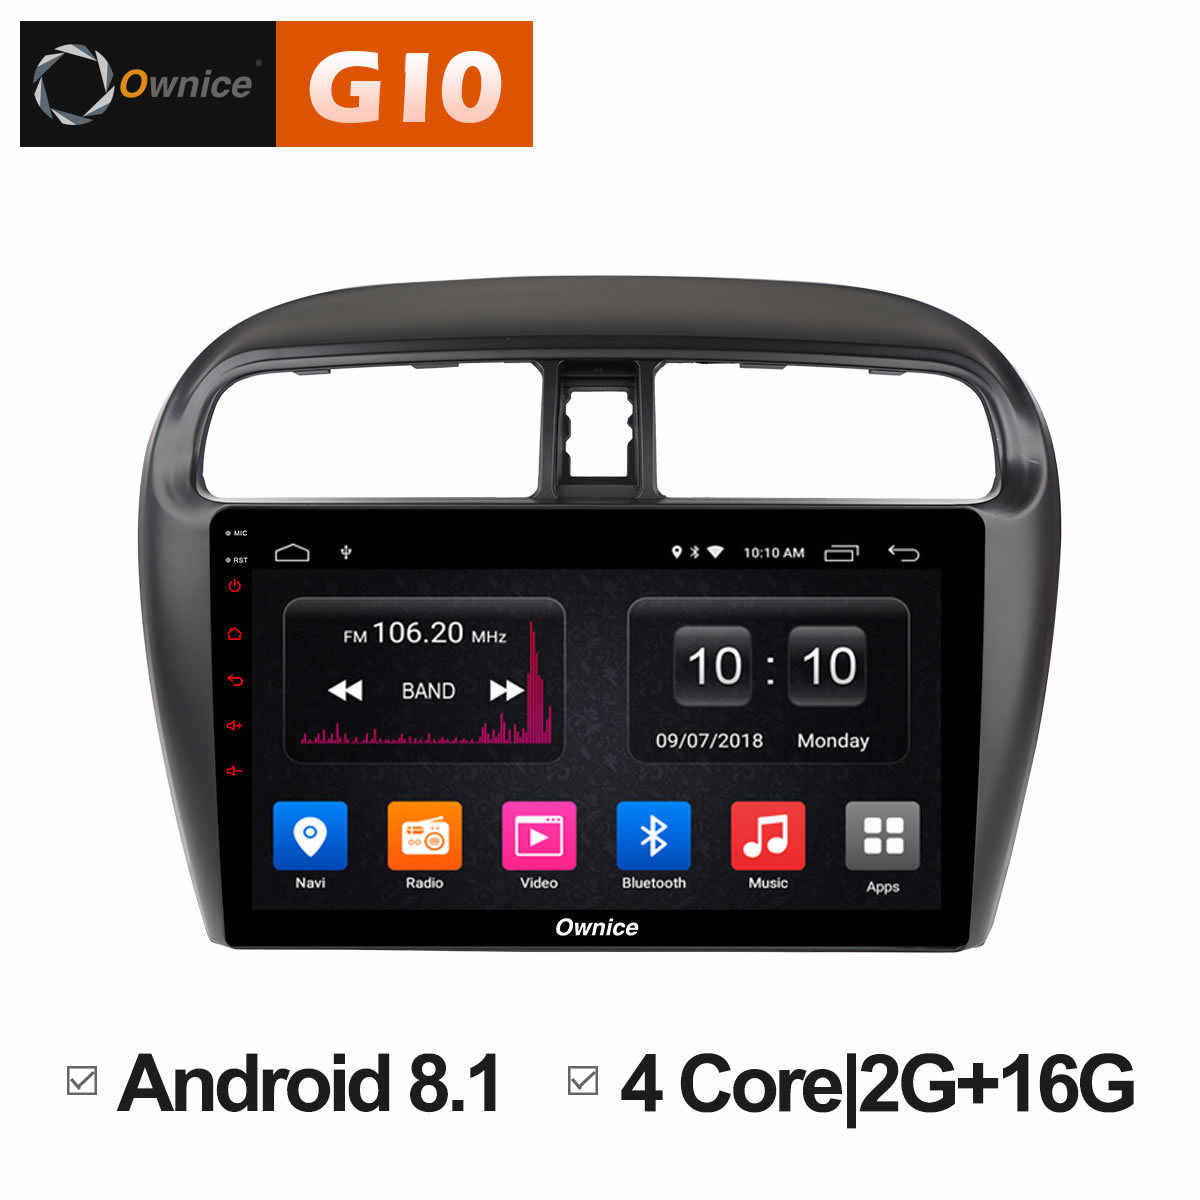 Ownice C500 + G10 9 inch 8 Core 2G + 32G Android 8.1 Auto radio voor Mitsubishi Mirage GT G4 2014 2017 GPS navigatie 4G LTE carplay